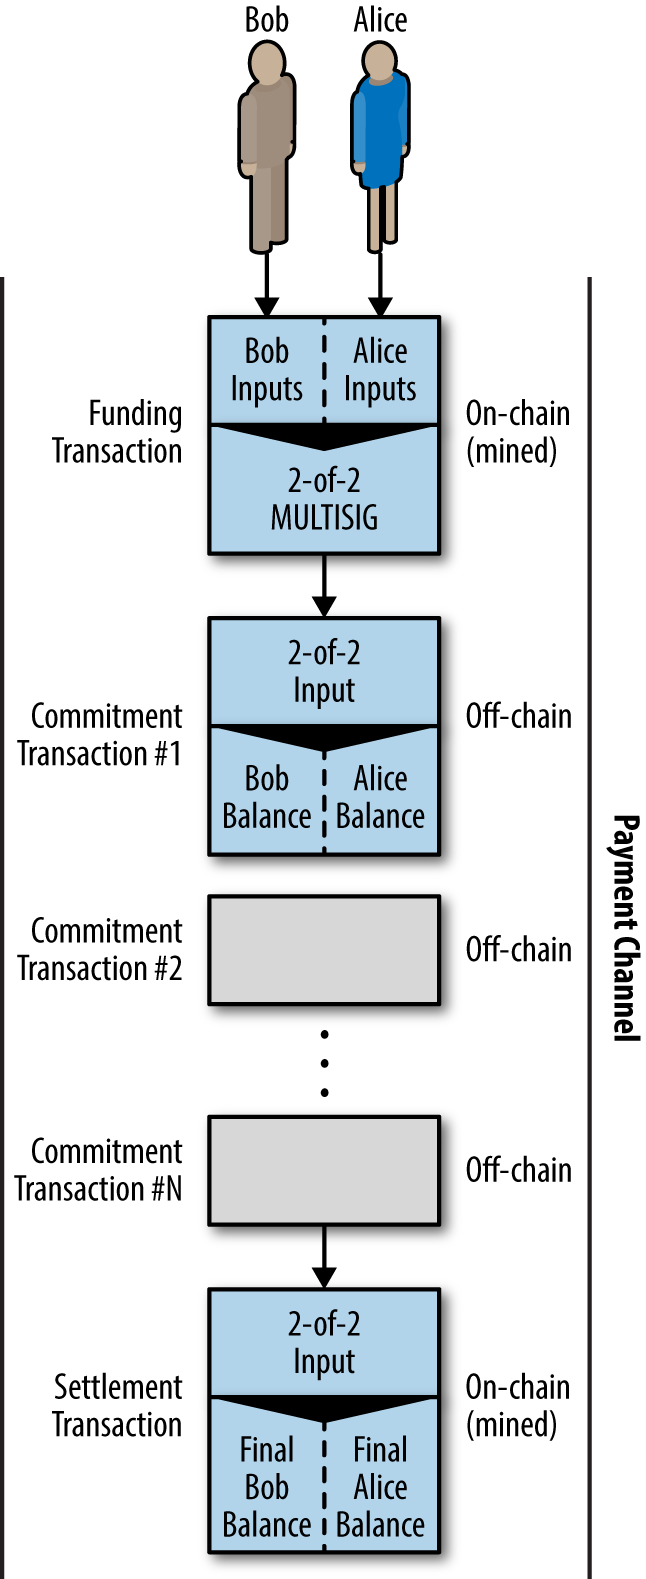 A payment channel between Bob and Alice, showing the funding, commitment, and settlement transactions